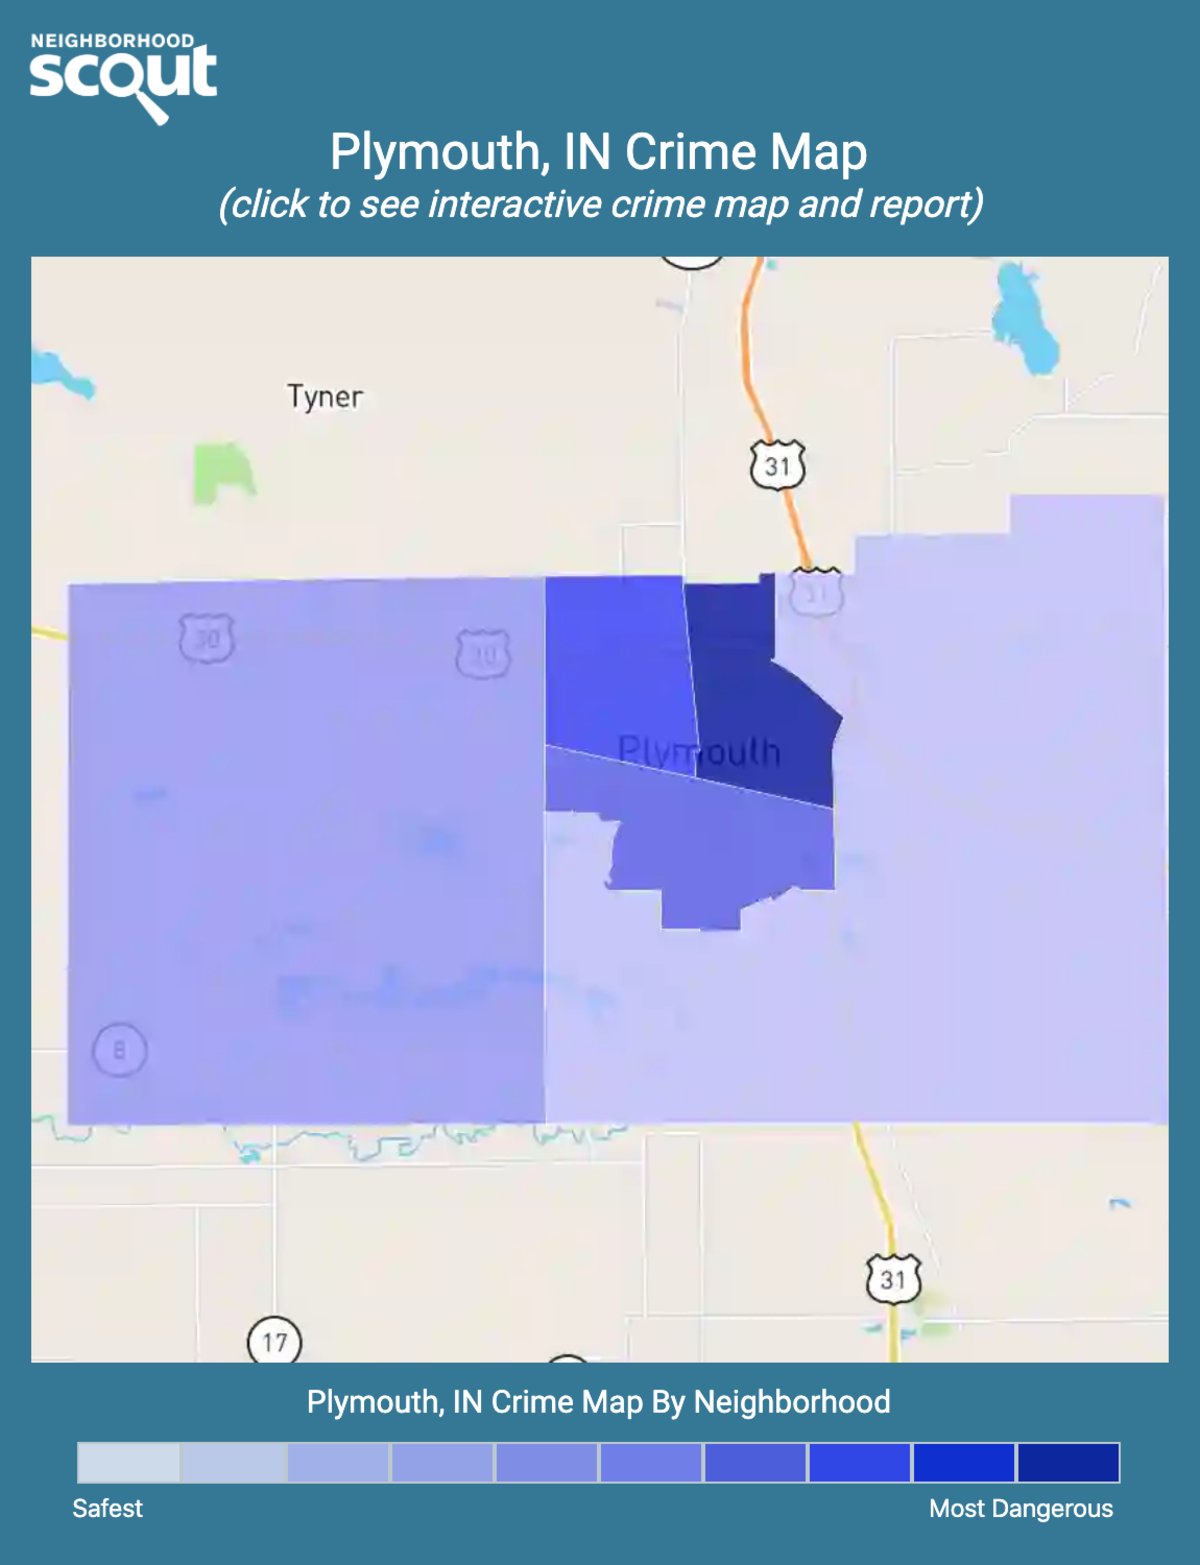 Plymouth, Indiana crime map